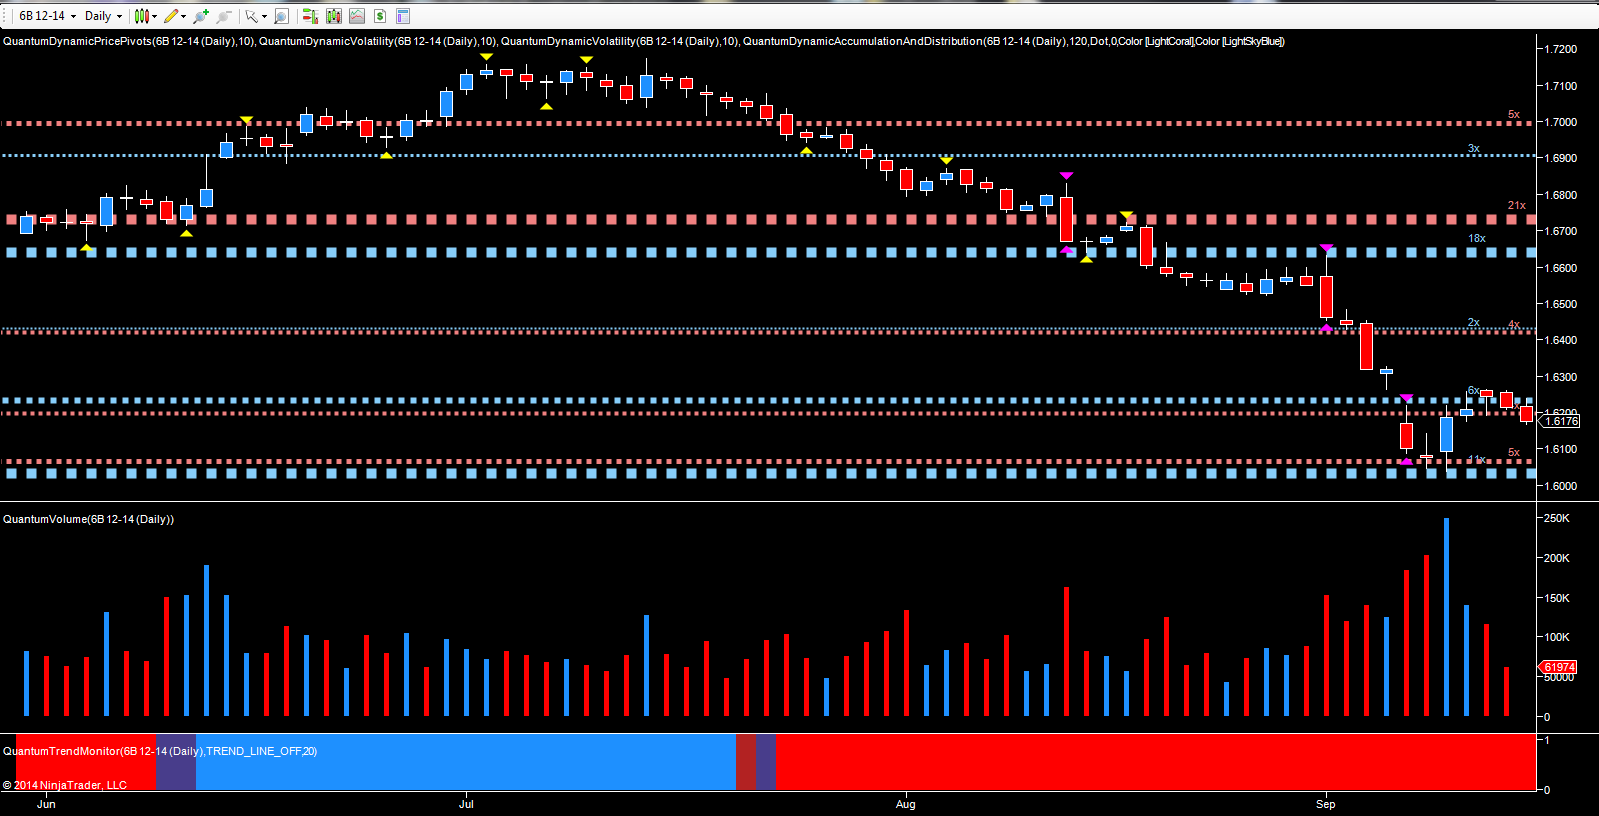 GBP/USD - December currency futures - daily chart